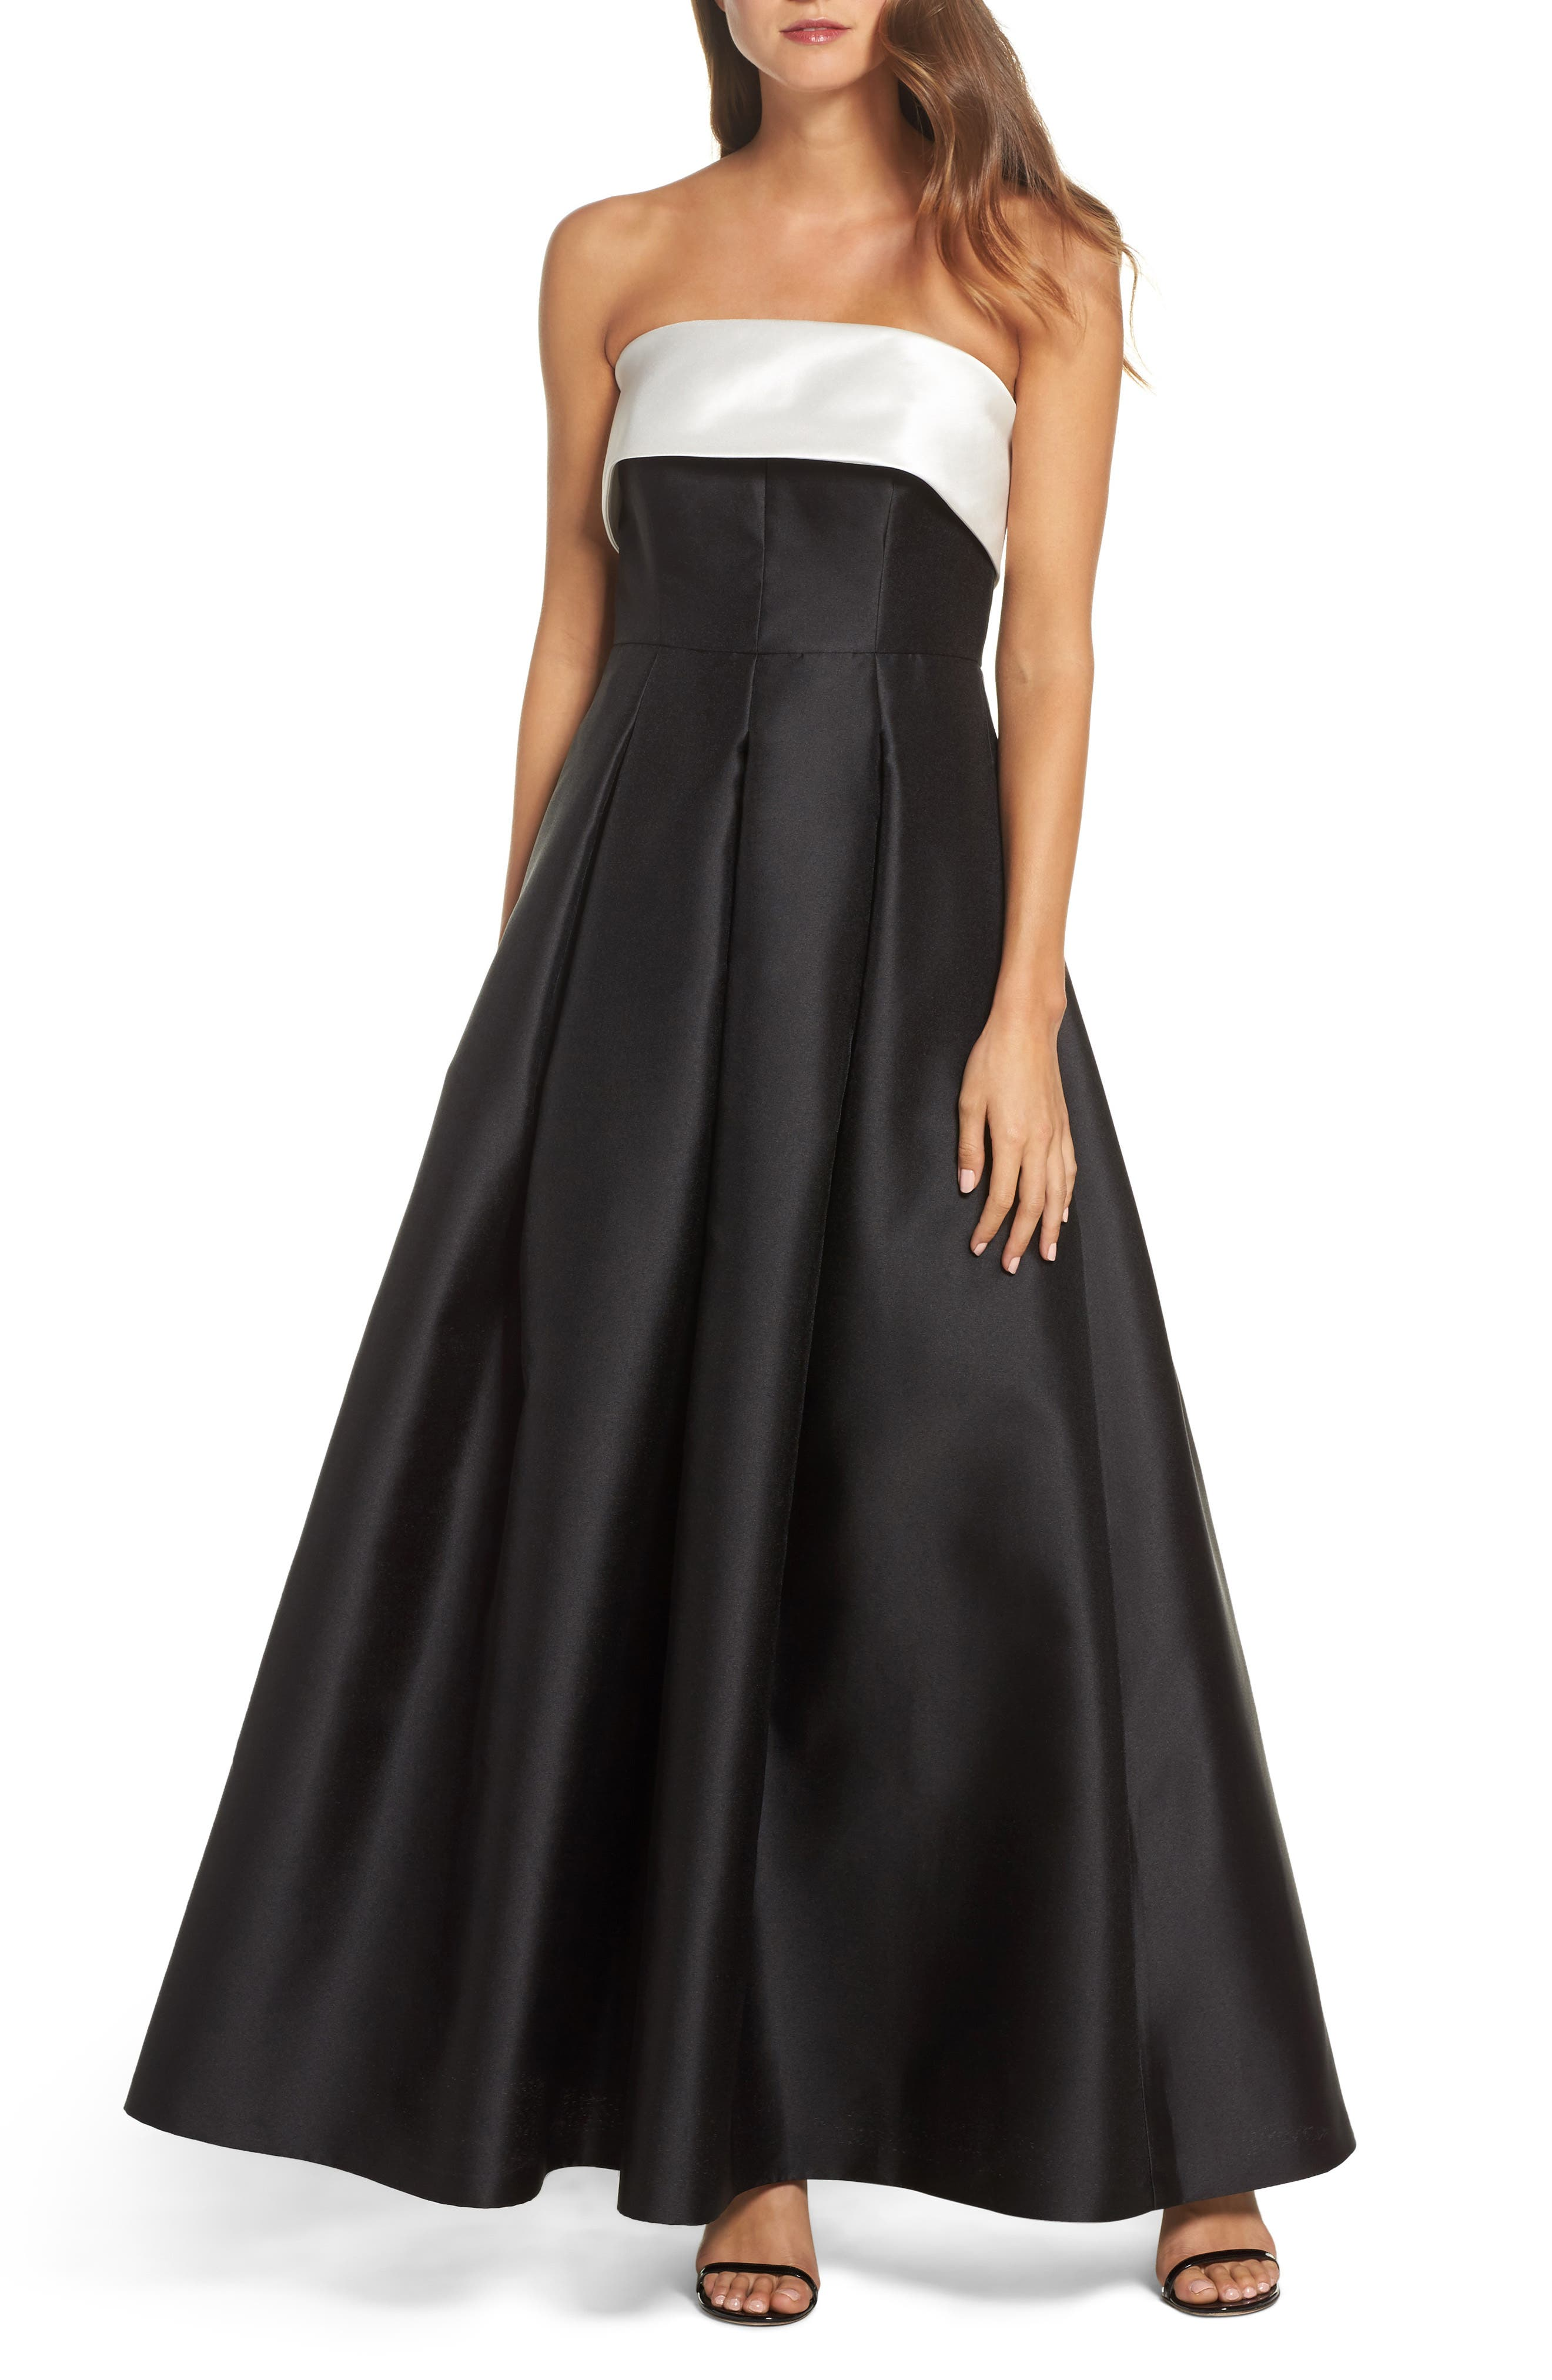 Strapless Gown,                             Main thumbnail 1, color,                             Ivory Black